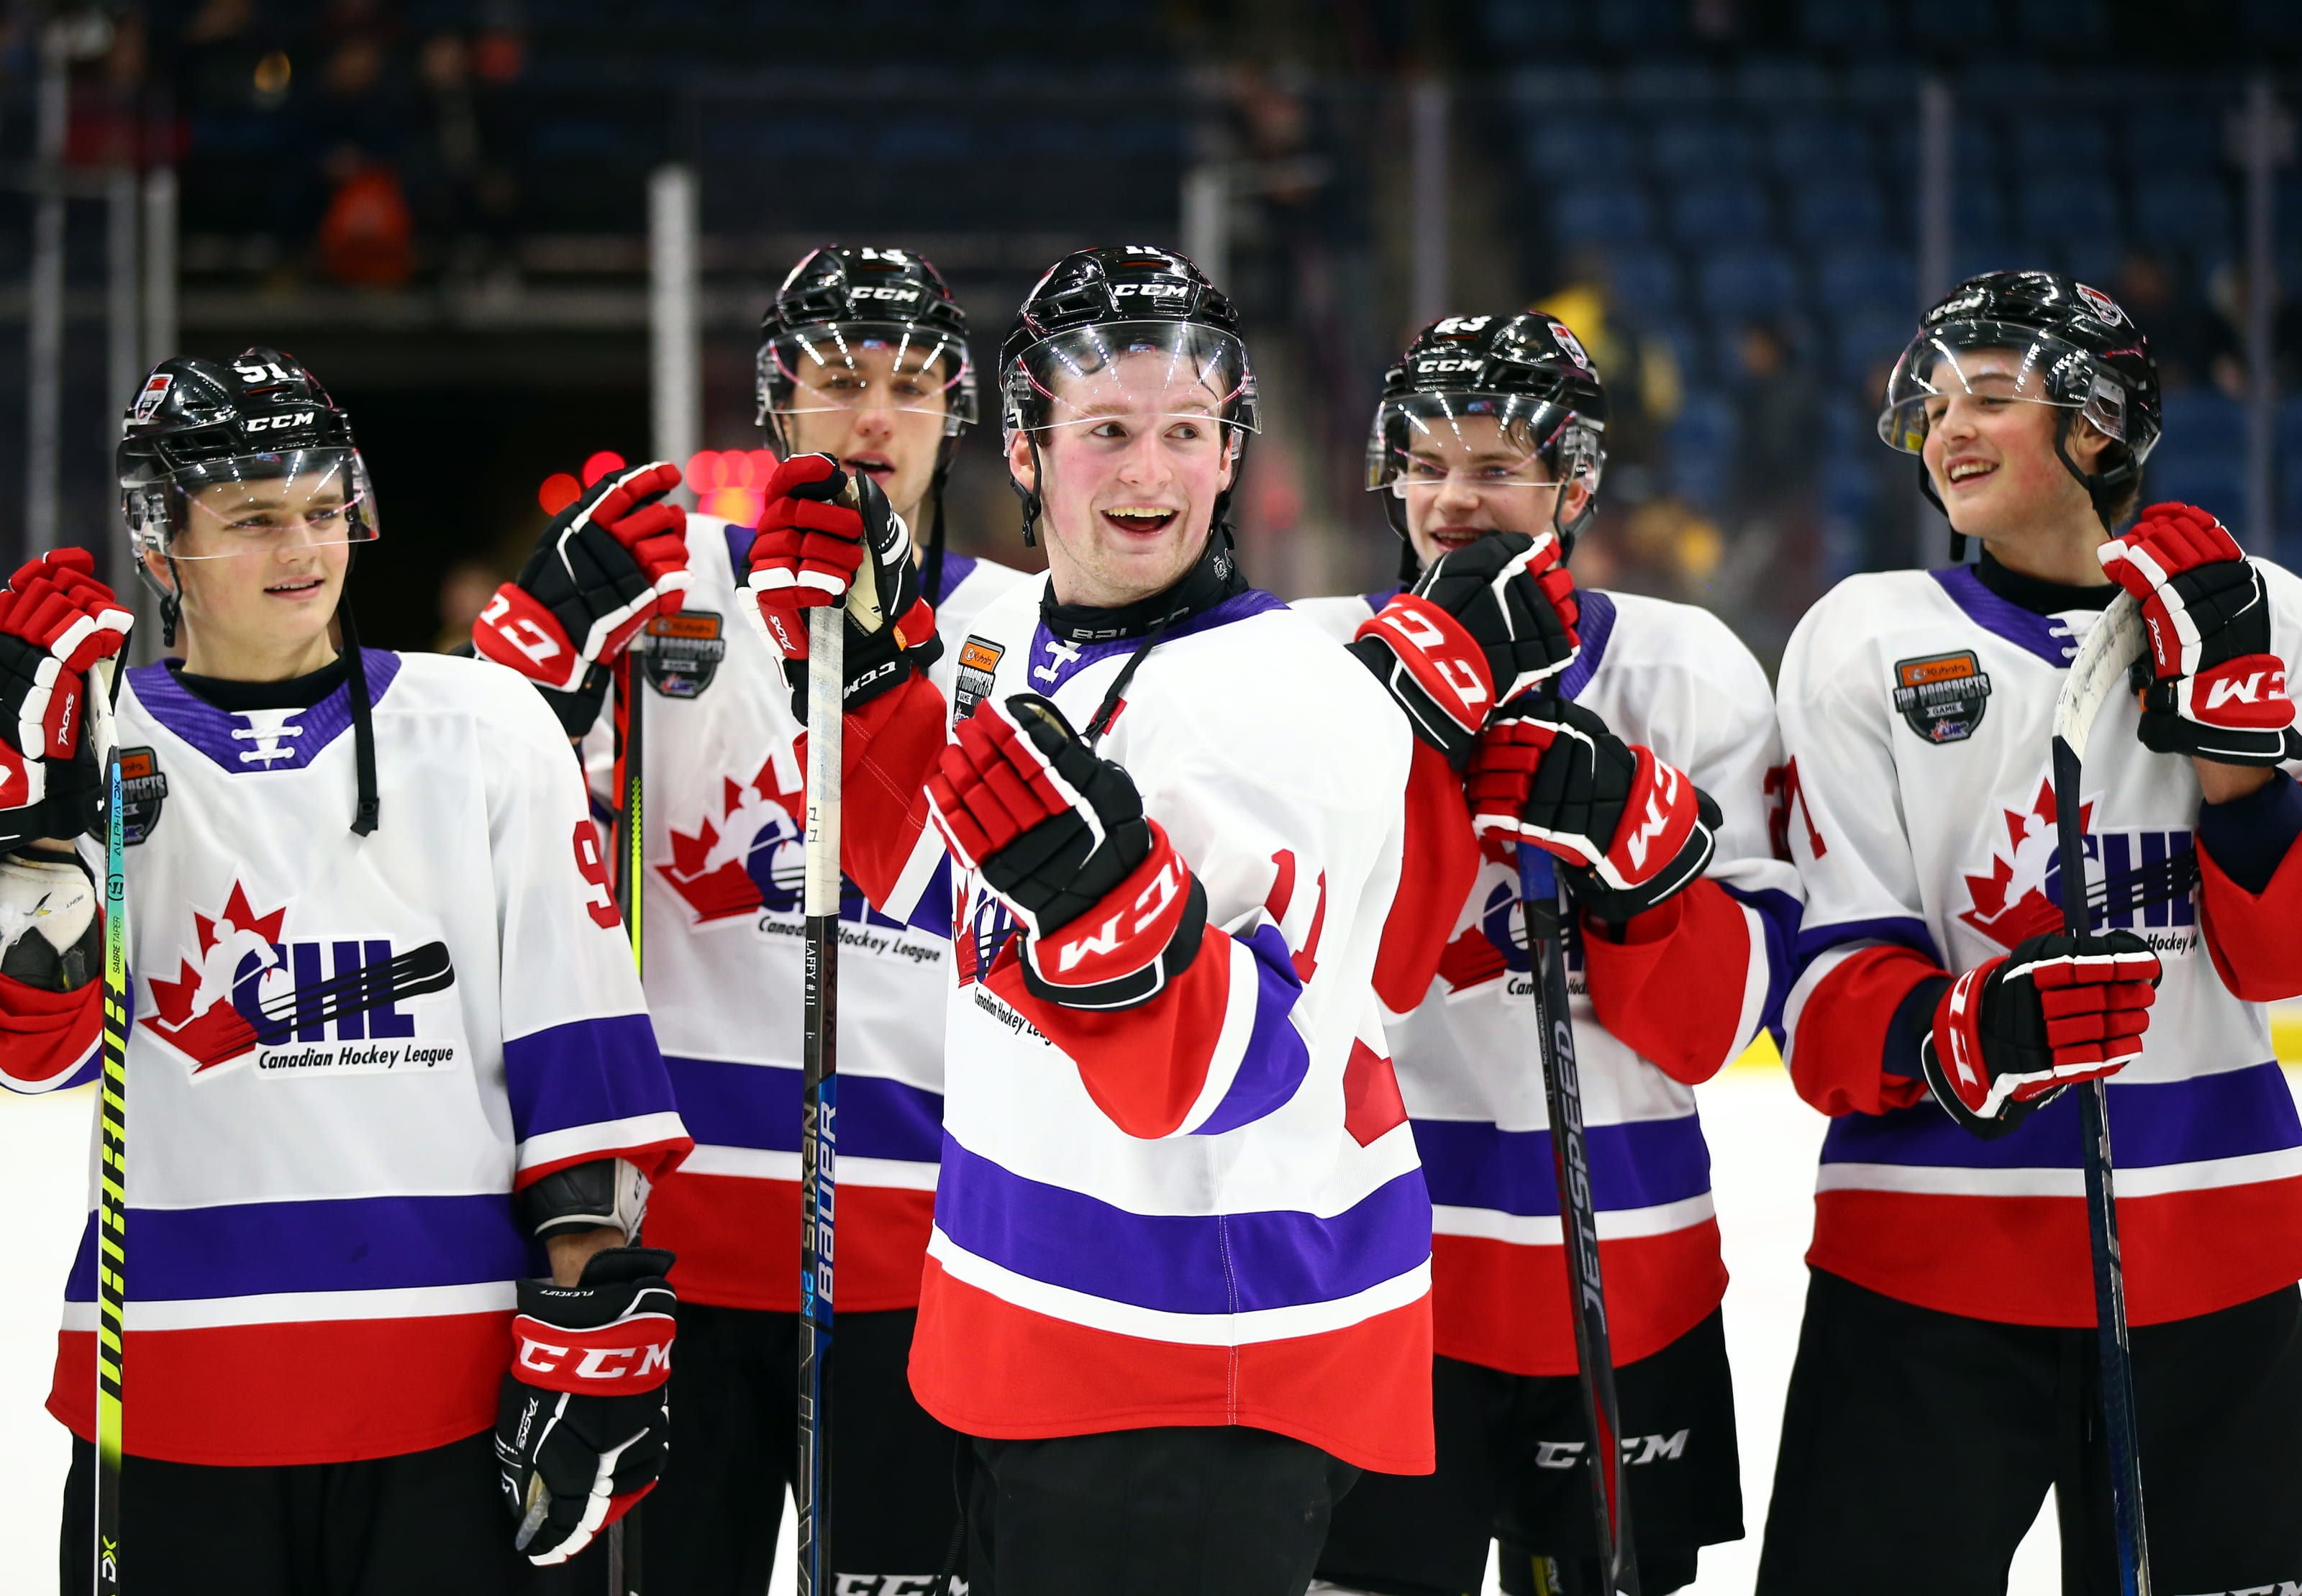 Alexis Lafreniere #11 of Team White laughs with teammates following the final whistle of the 2020 CHL/NHL Top Prospects Game against Team Red.